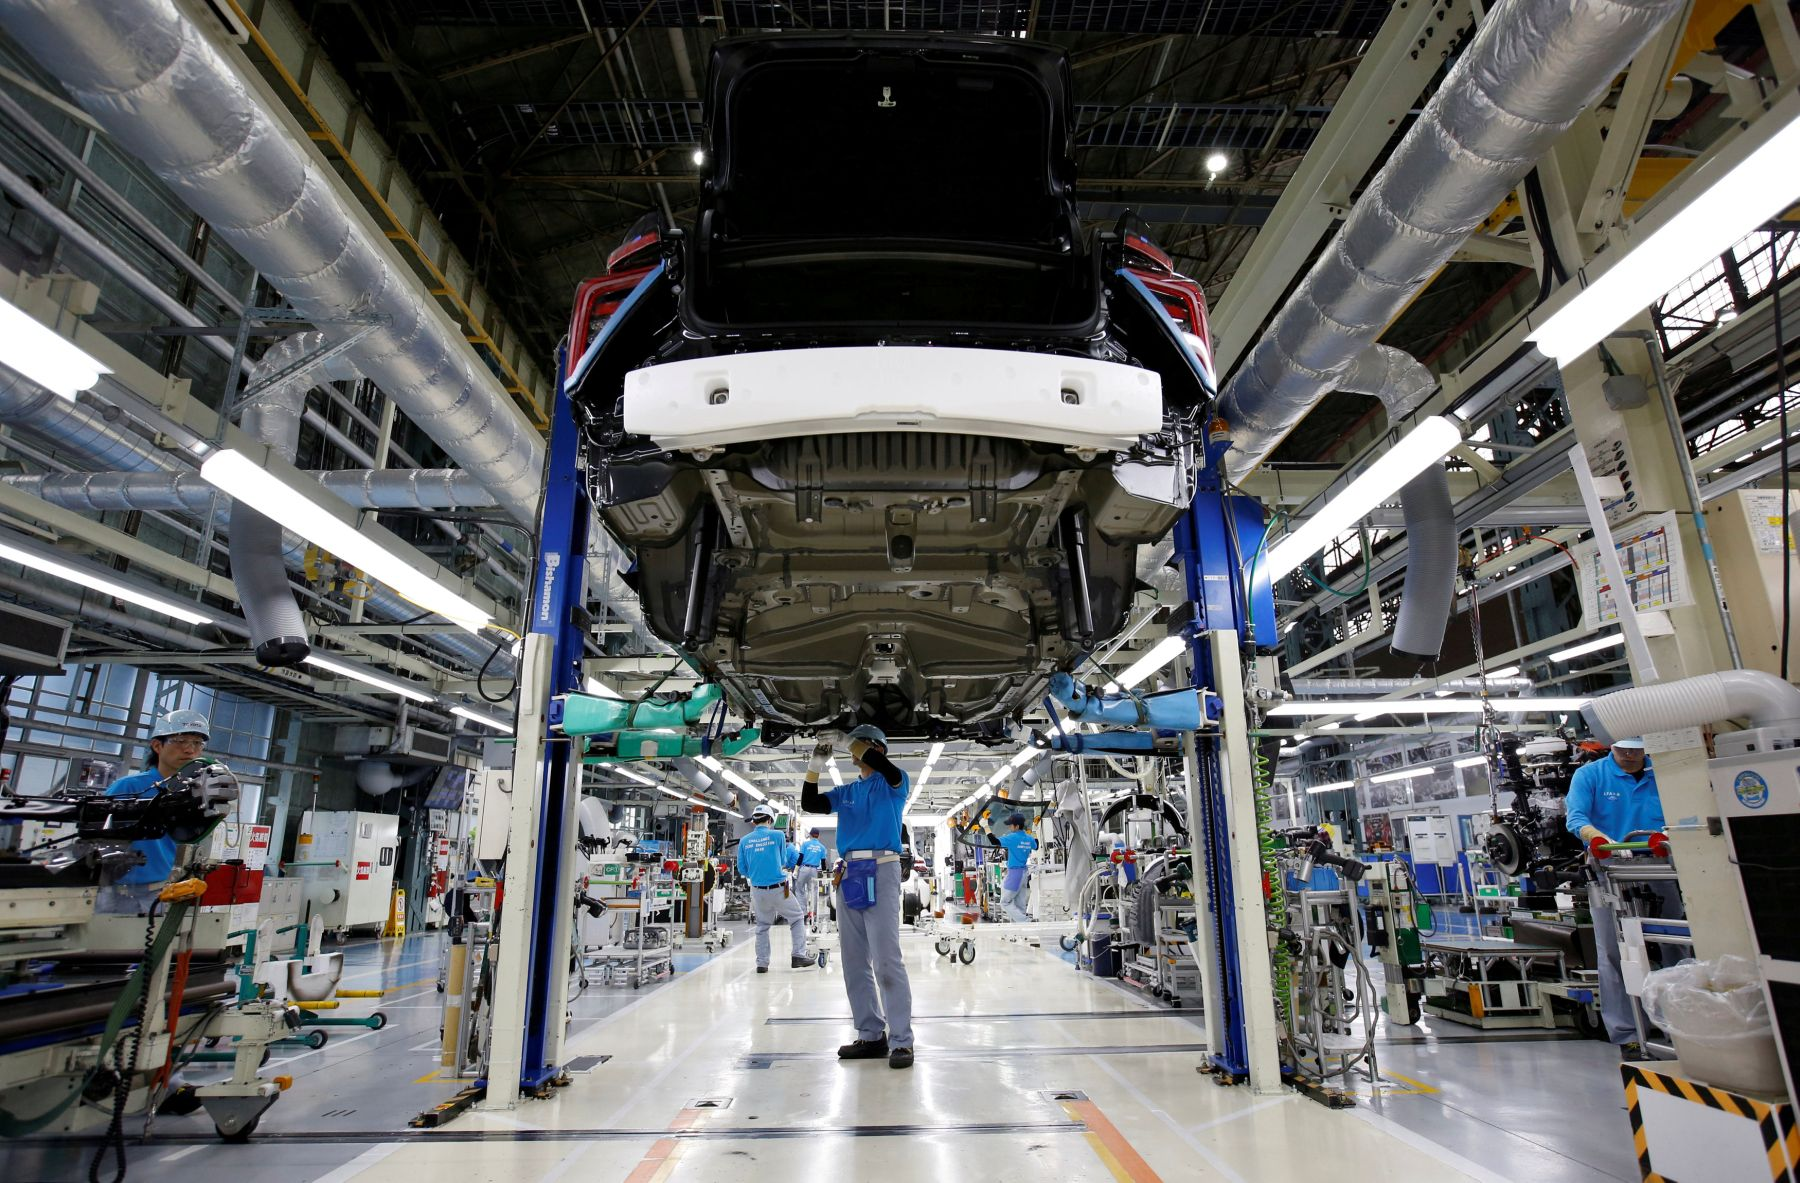 FILE PHOTO: Employees of Toyota Motor Corp. work on assembly line in Toyota